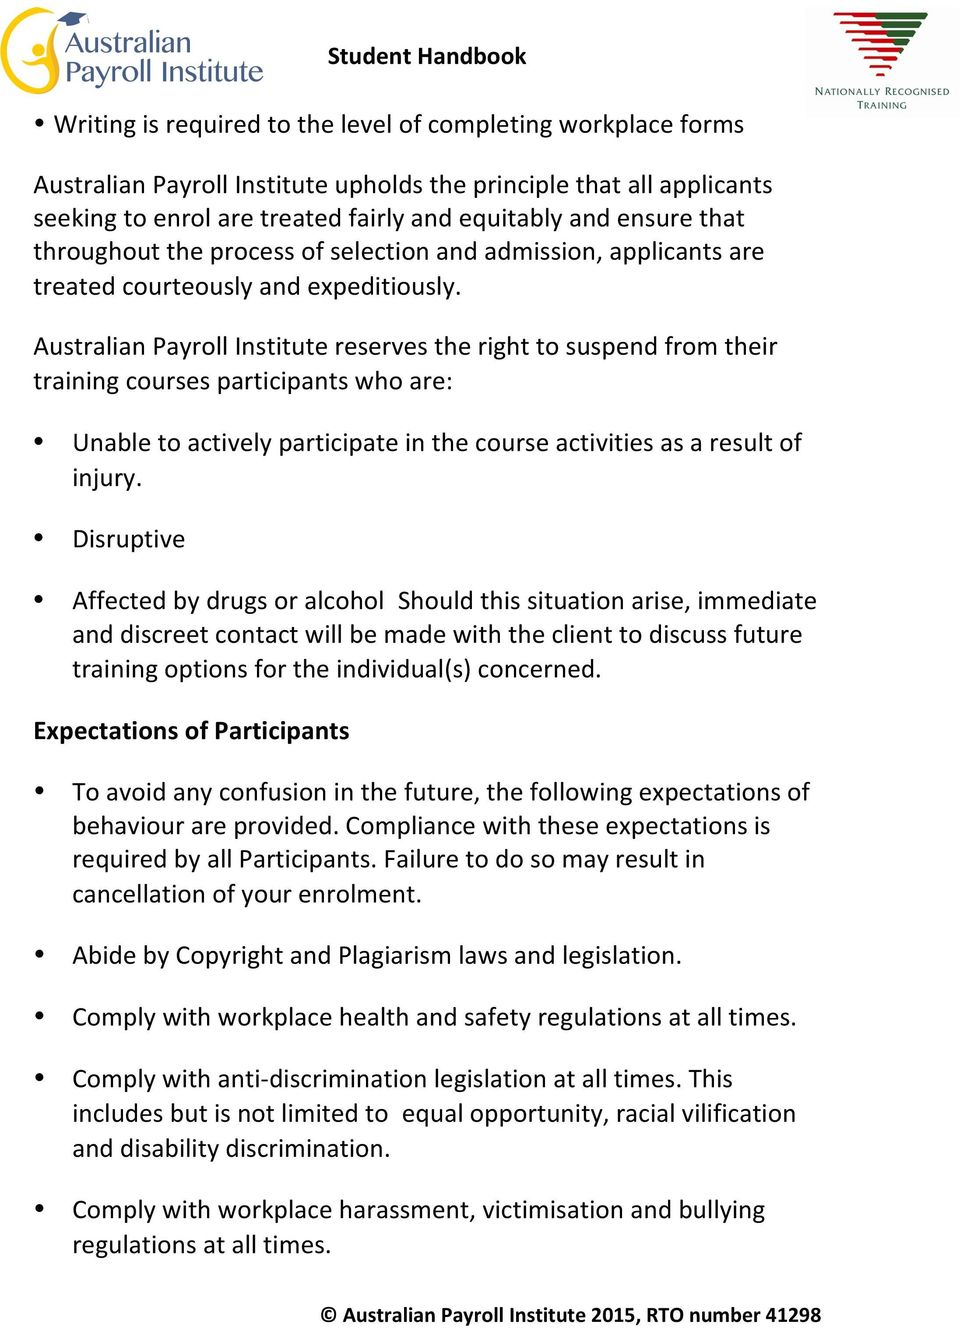 Australian Payroll Institute reserves the right to suspend from their training courses participants who are: Unable to actively participate in the course activities as a result of injury.